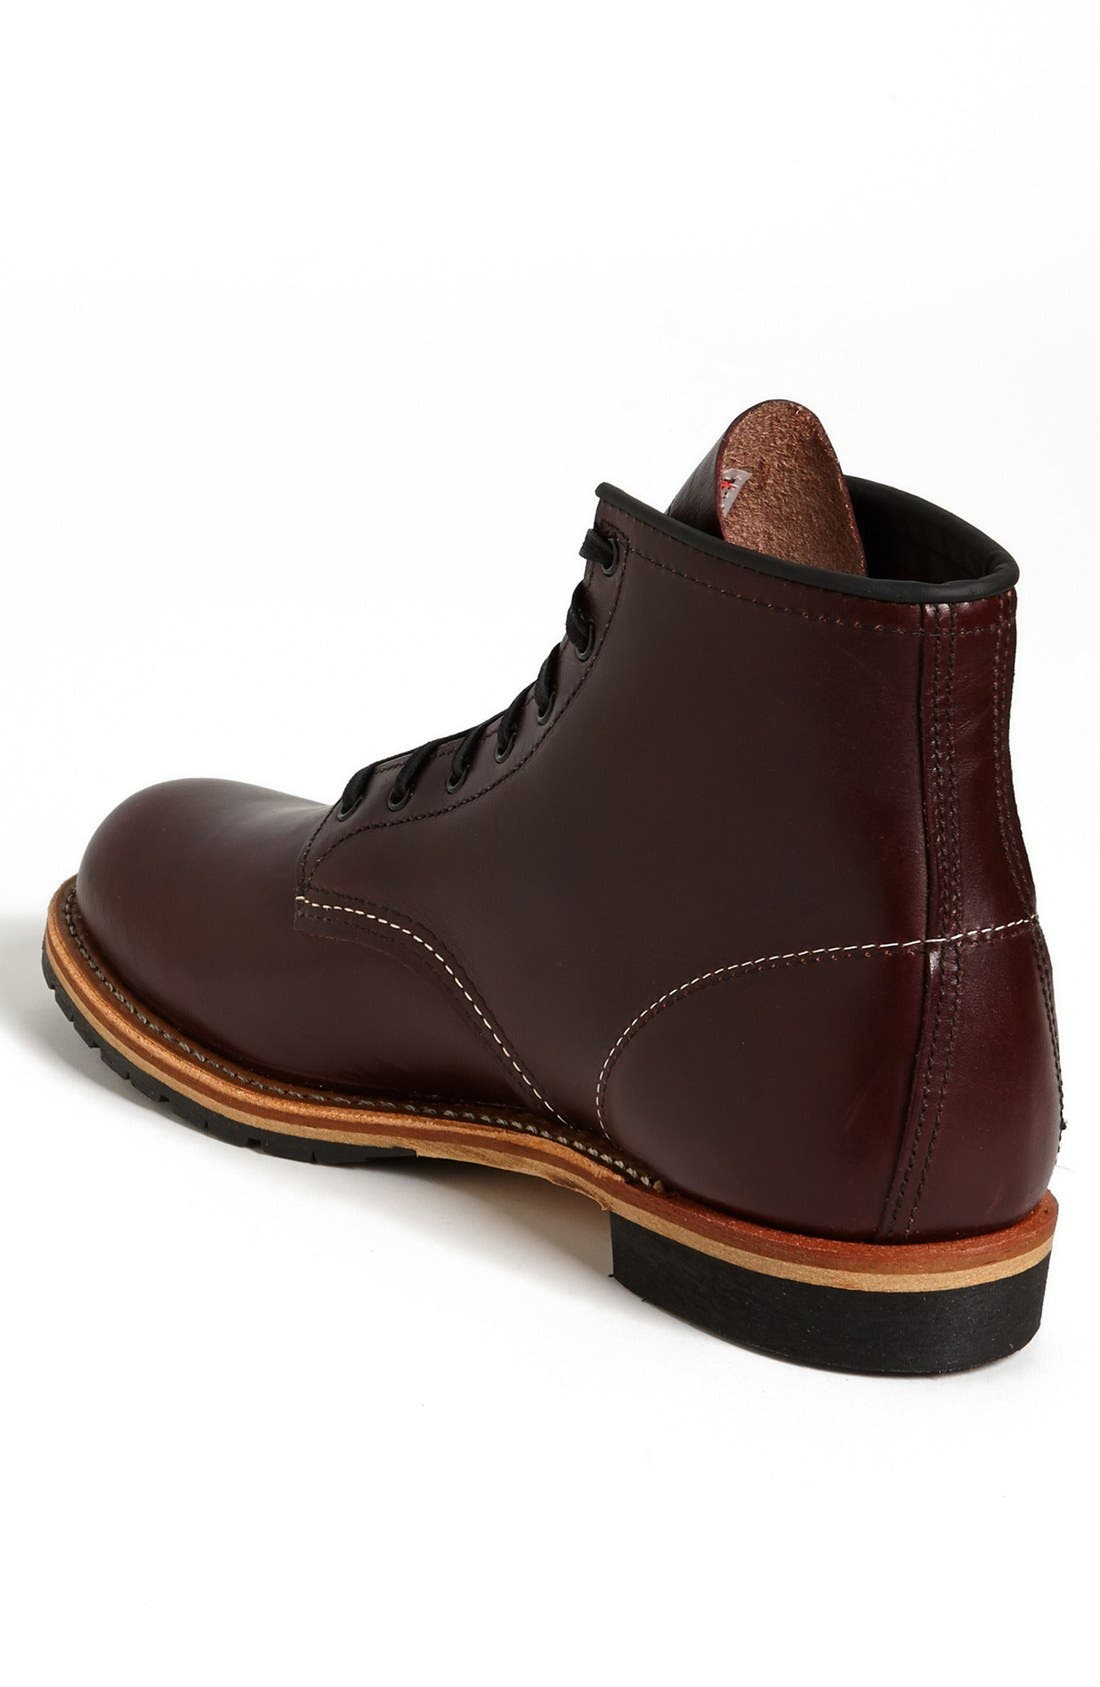 'Beckman' Boot,                             Alternate thumbnail 3, color,                             002